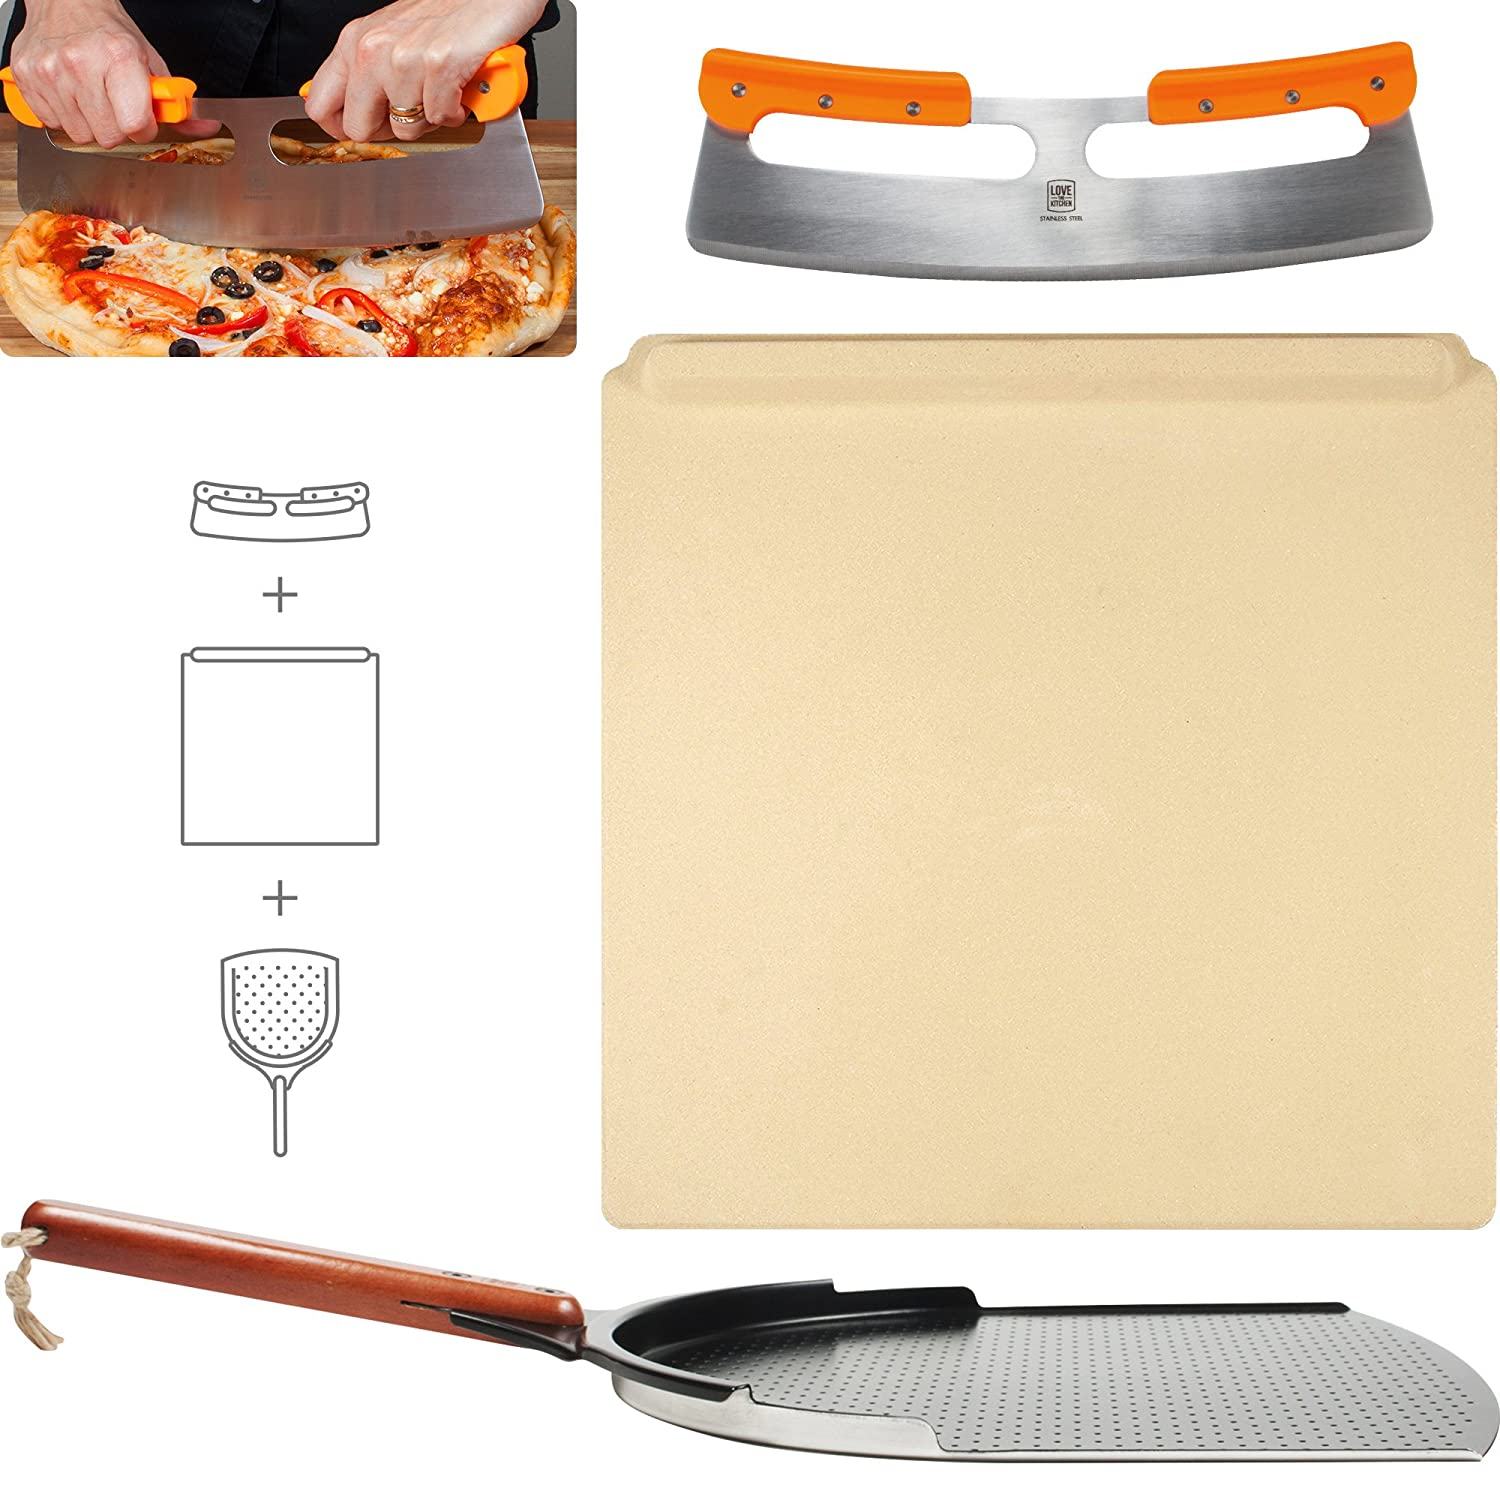 """The Ultimate Pizza Making Set - 14"""" x 16"""" Pizza Stone, 14"""" Aluminum Pizza Peel and 14"""" Stainless Steel Rocker Pizza Cutter   Great for Baking Pizza, Cookies and Bread in Any Oven or Grill"""